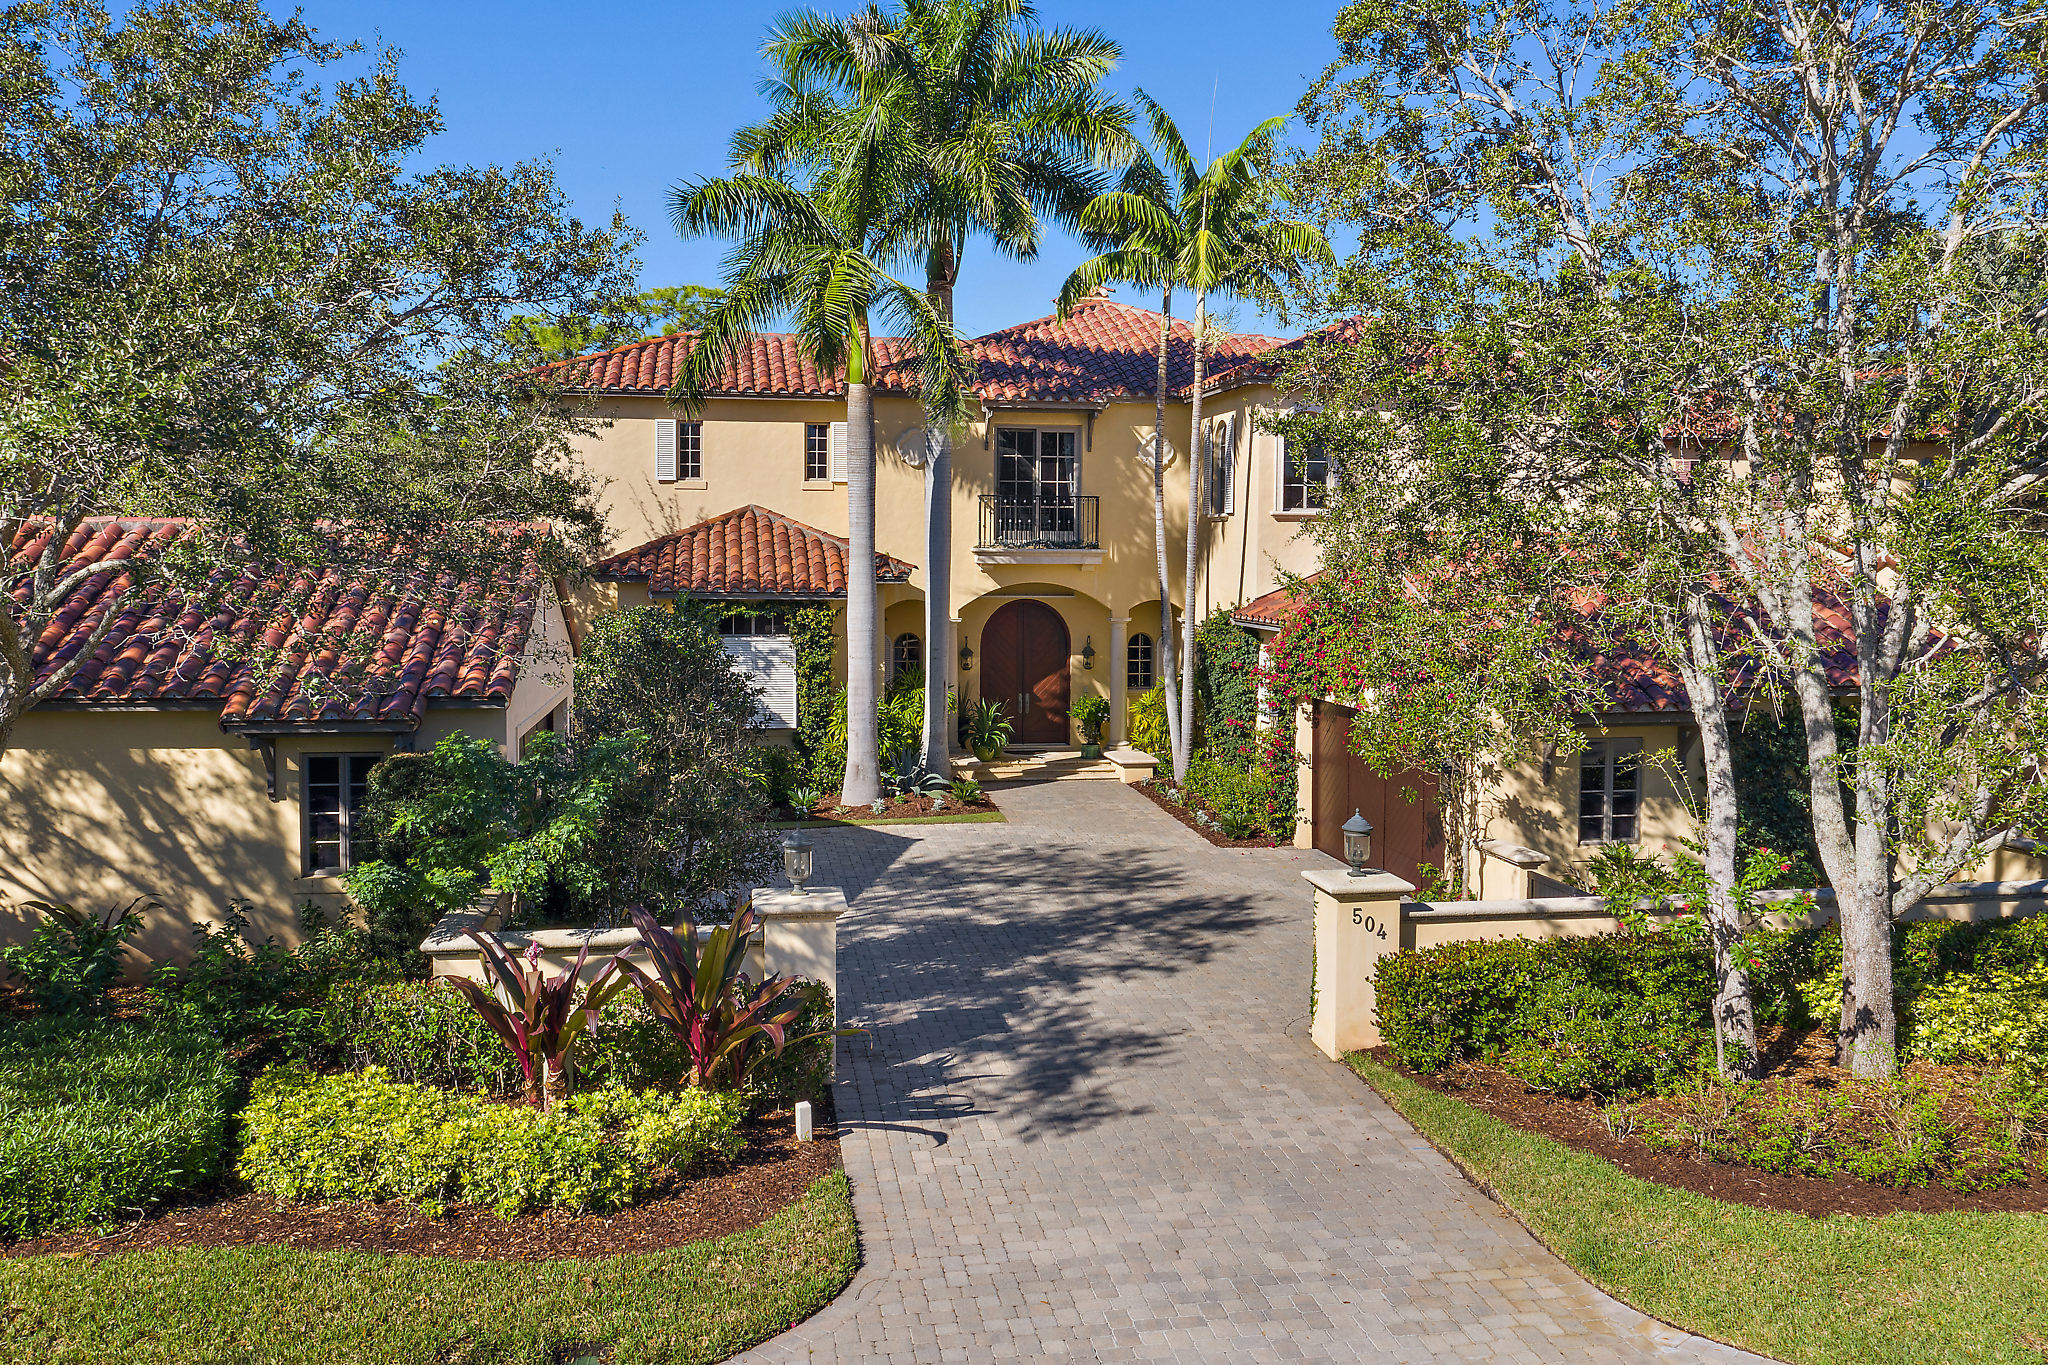 New Home for sale at 504 Bald Eagle Drive in Jupiter